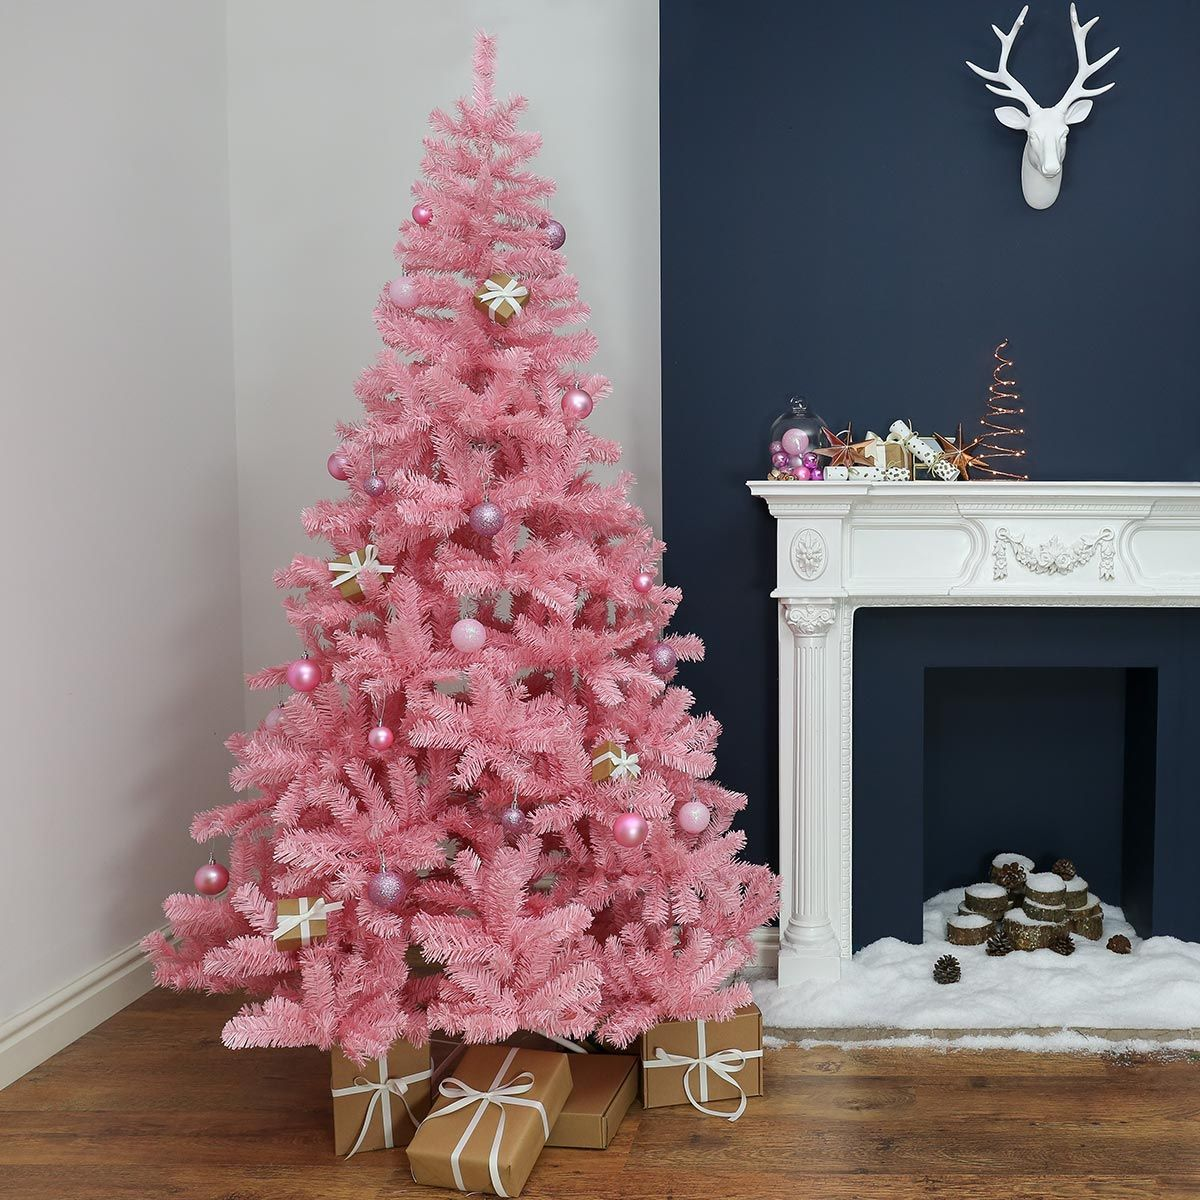 Pink Christmas Trees Are In Demand Artificial Christmas Trees